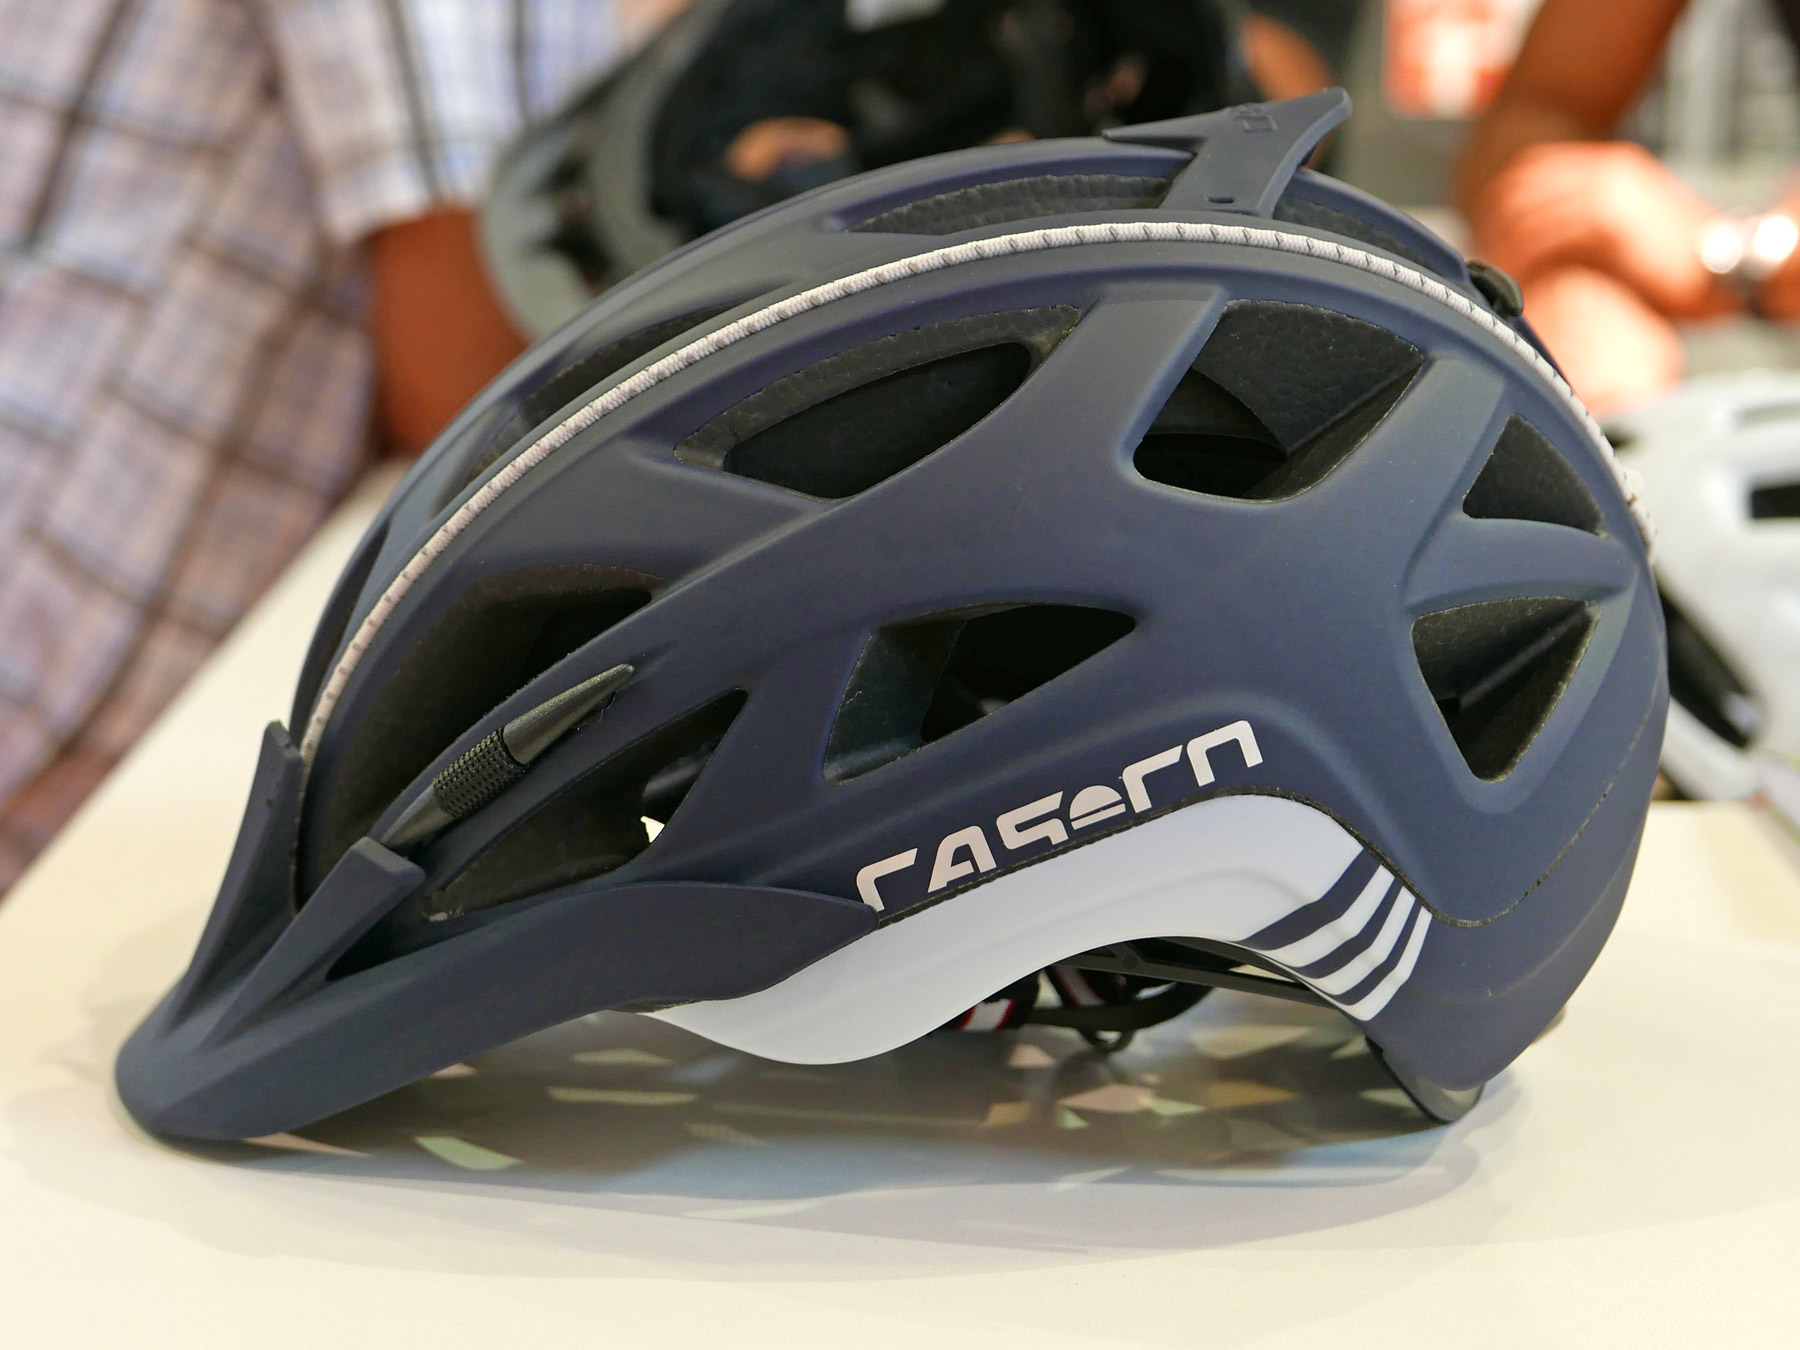 eb16 casco finalizes well vented full air rcc helmet. Black Bedroom Furniture Sets. Home Design Ideas